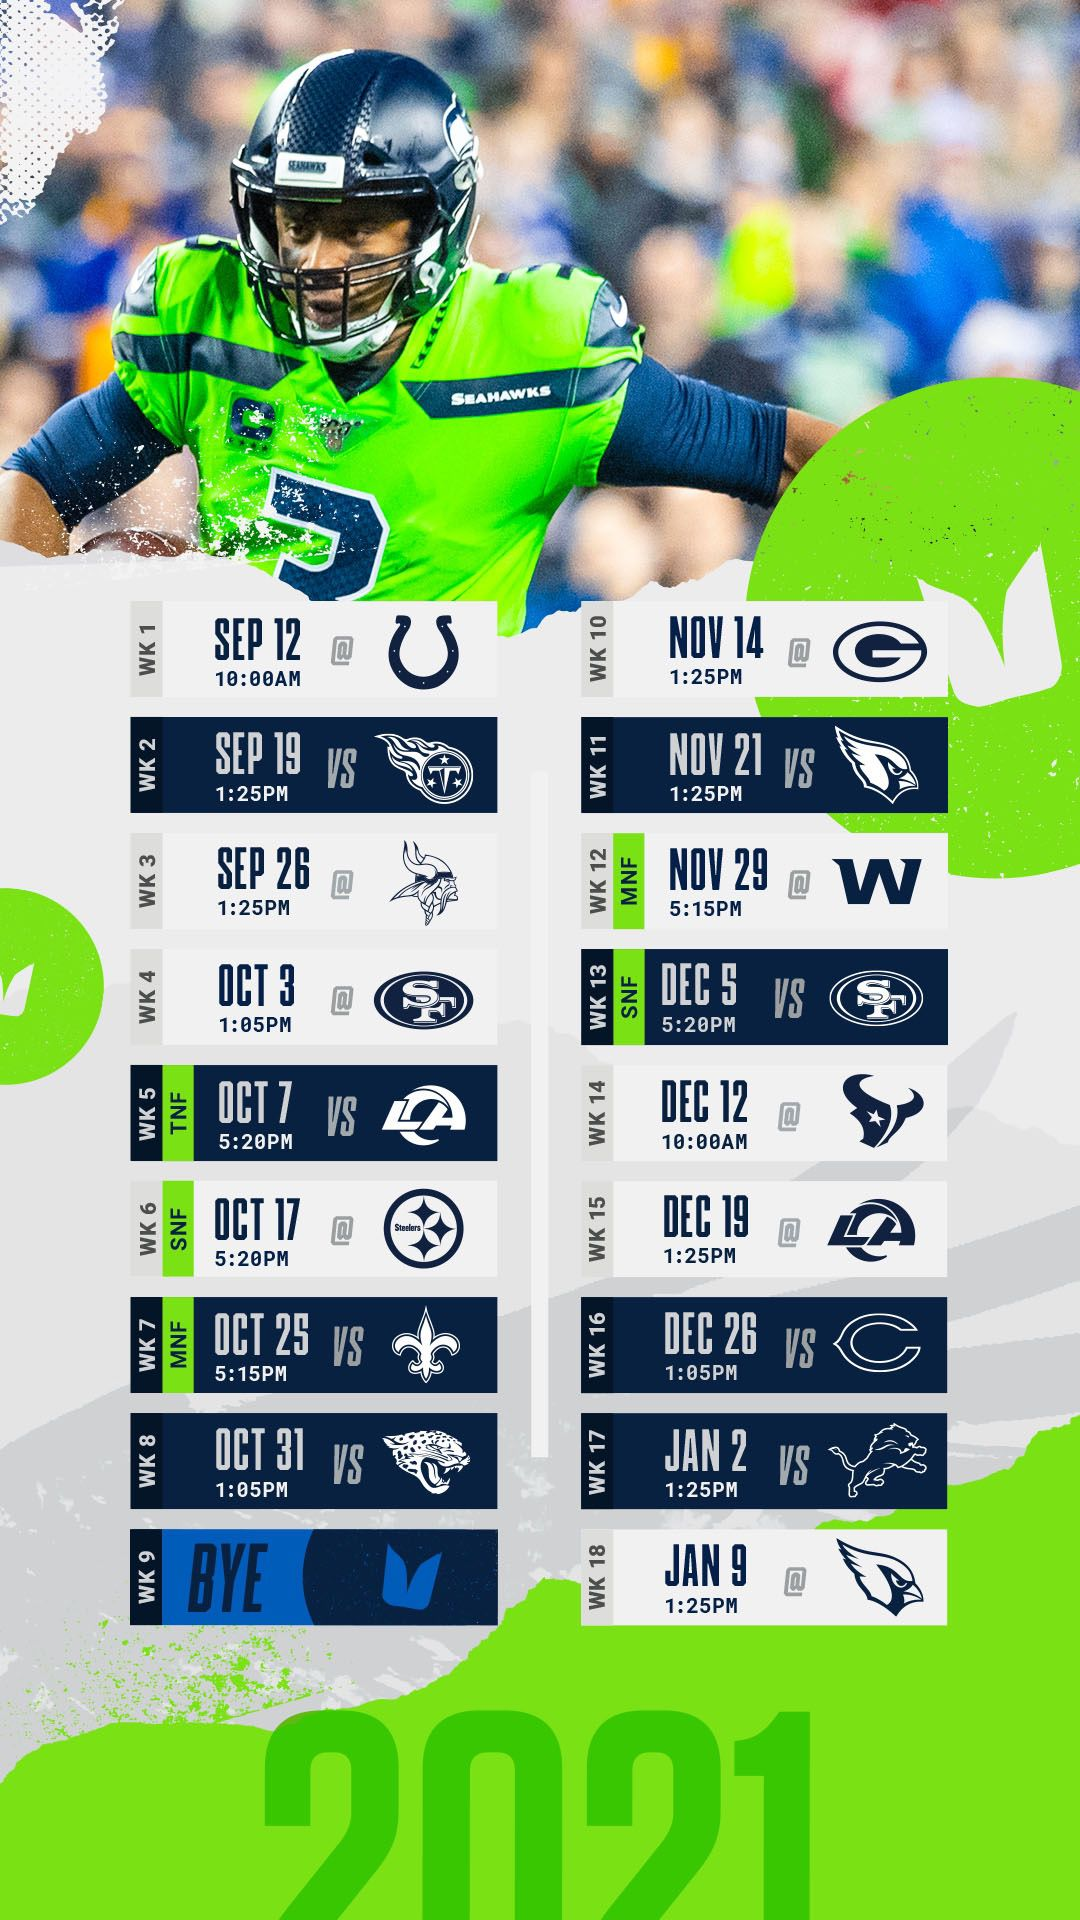 Seahawks Tickets 4 Seats Vs Rams 10/07 And Other Games